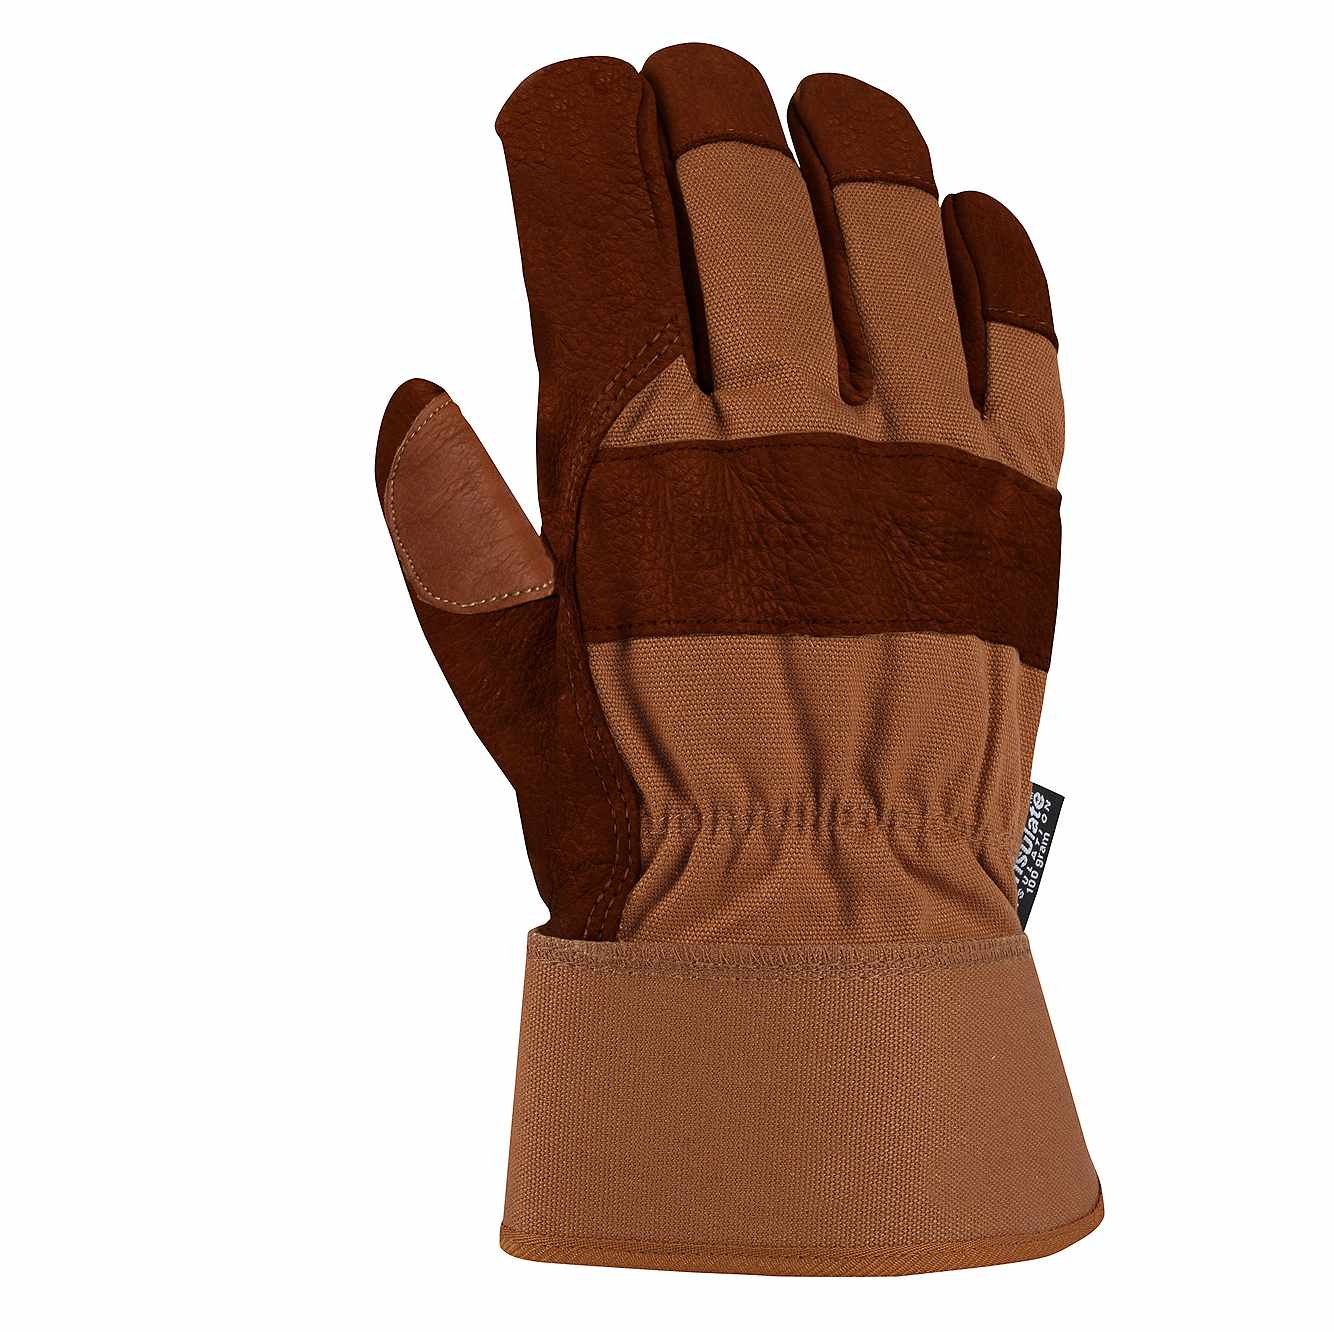 Picture of Insulated Bison Leather Safety Cuff Work Glove in Carhartt Brown